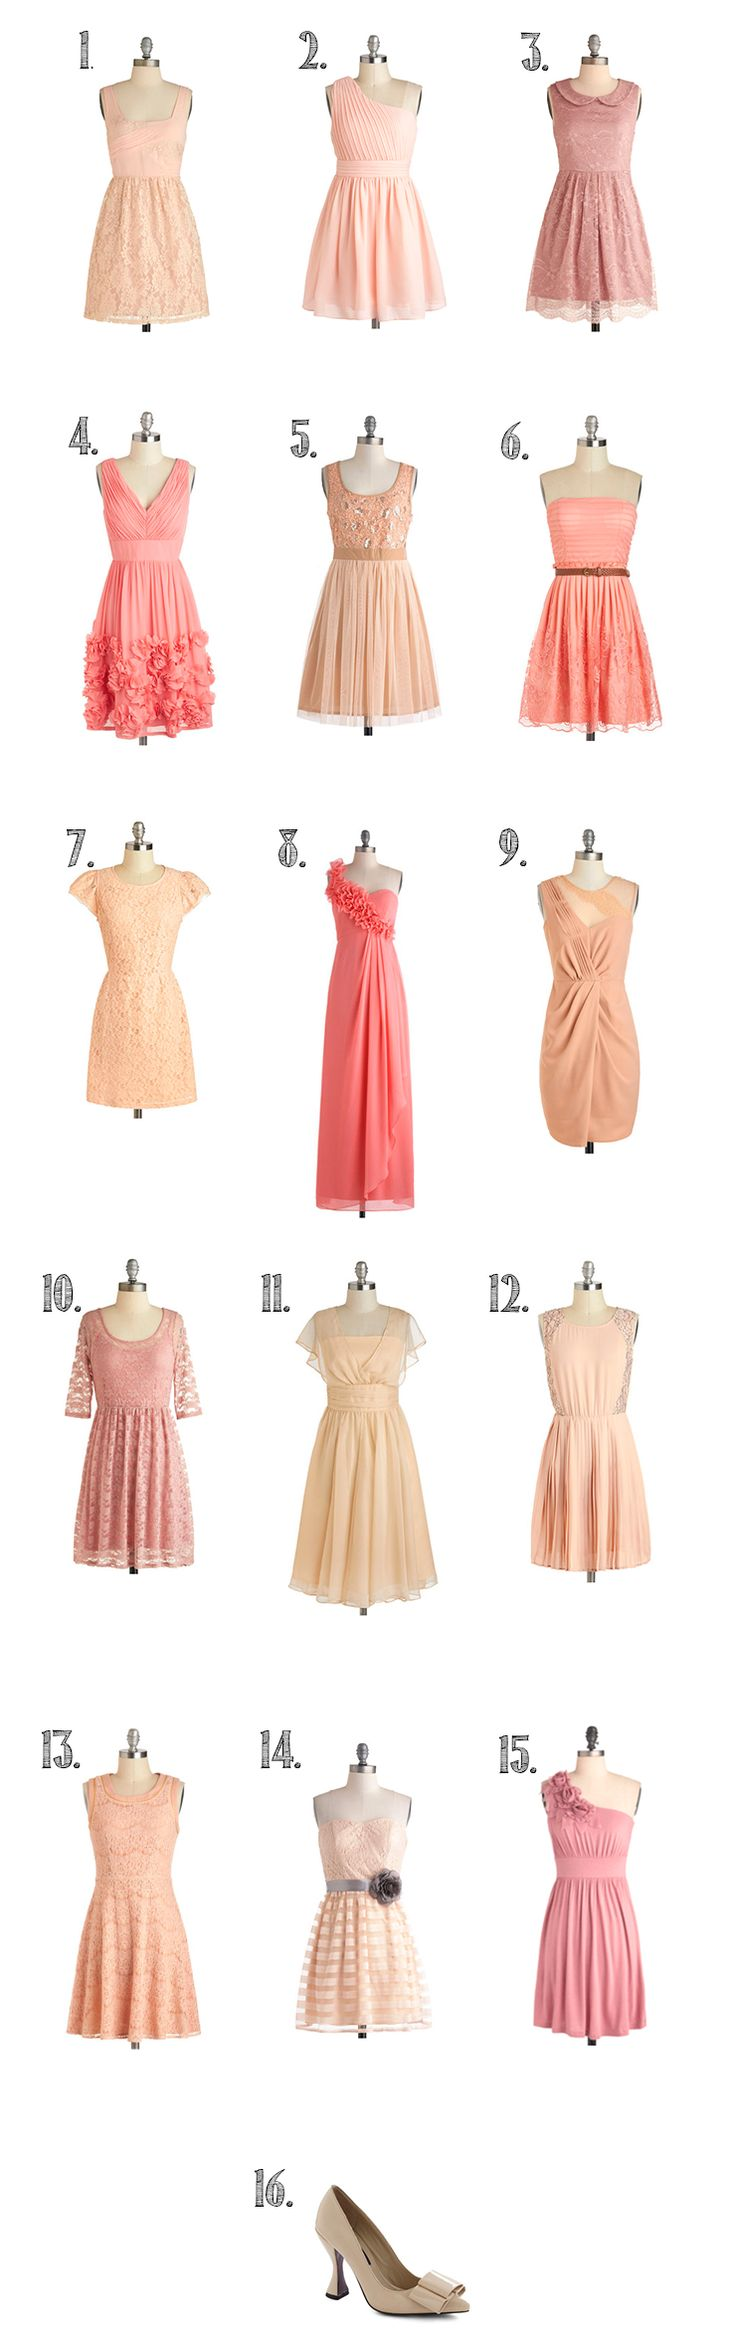 Vintage Inspired Dresses for 70% Off - Upcycled Treasures